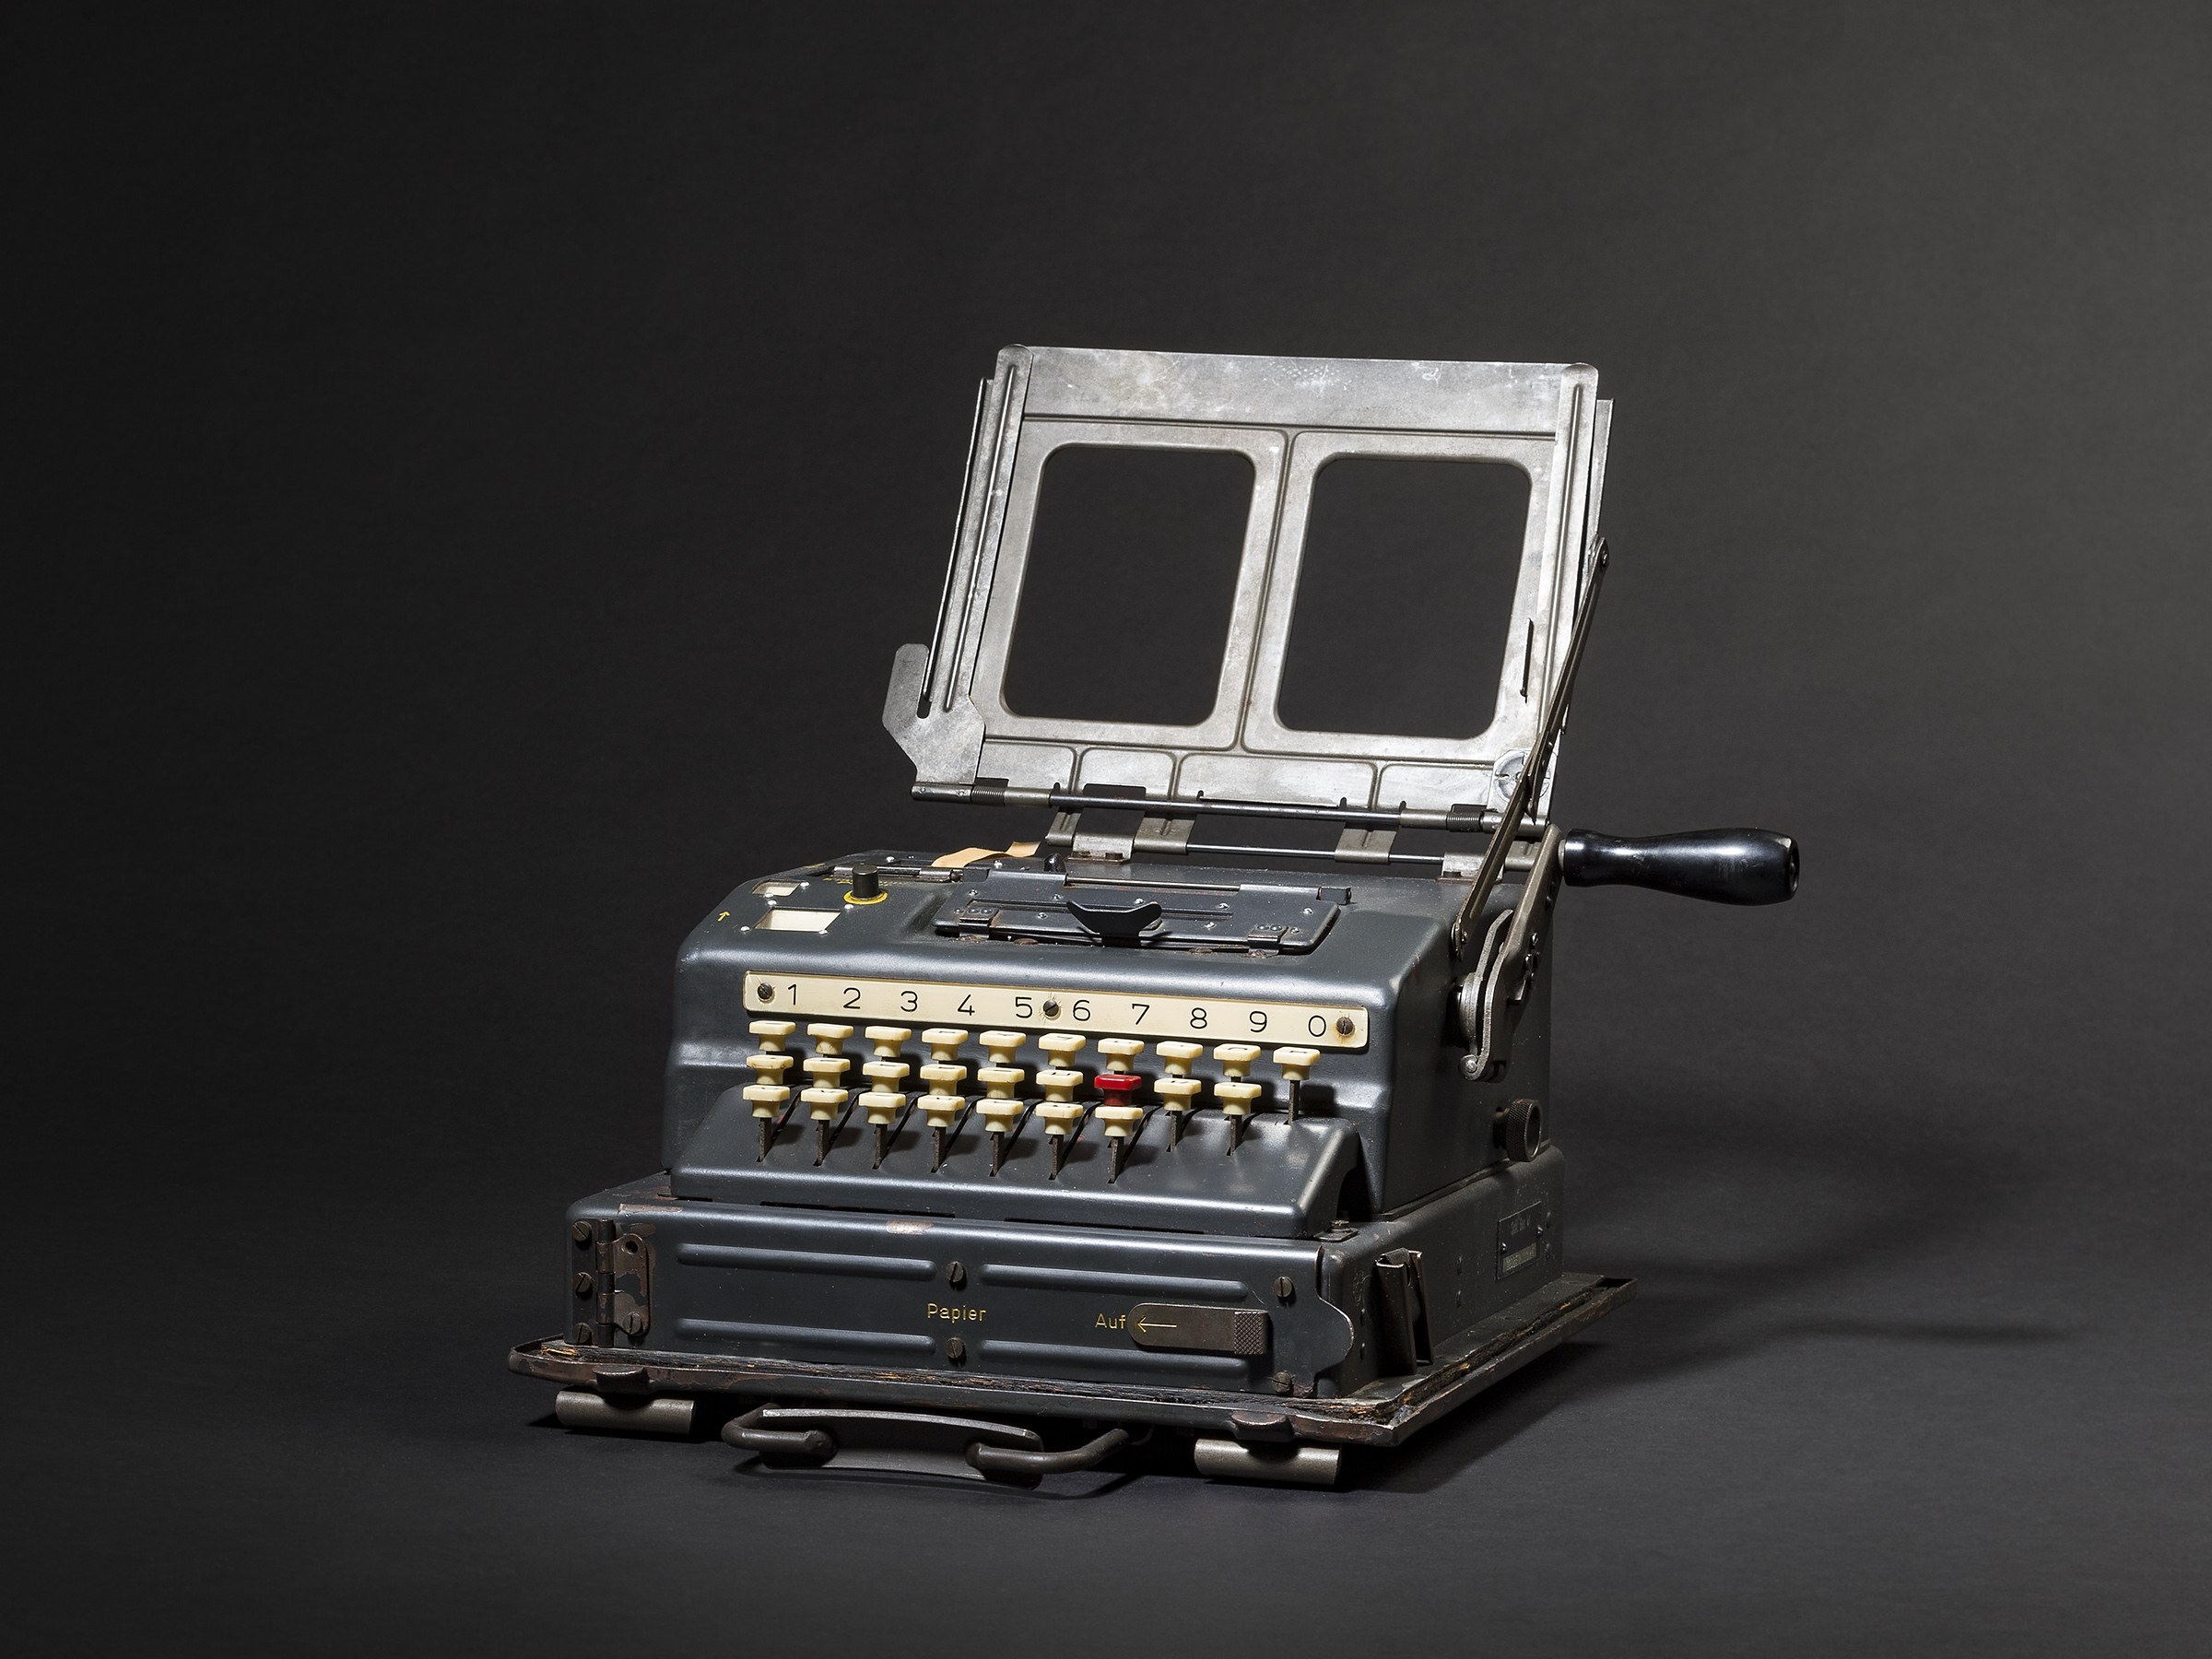 The Schlüsselgerät 41 cryptographic machine, shown in full. It looks kind of like a typewriter, and it has a handle crank on its right side.